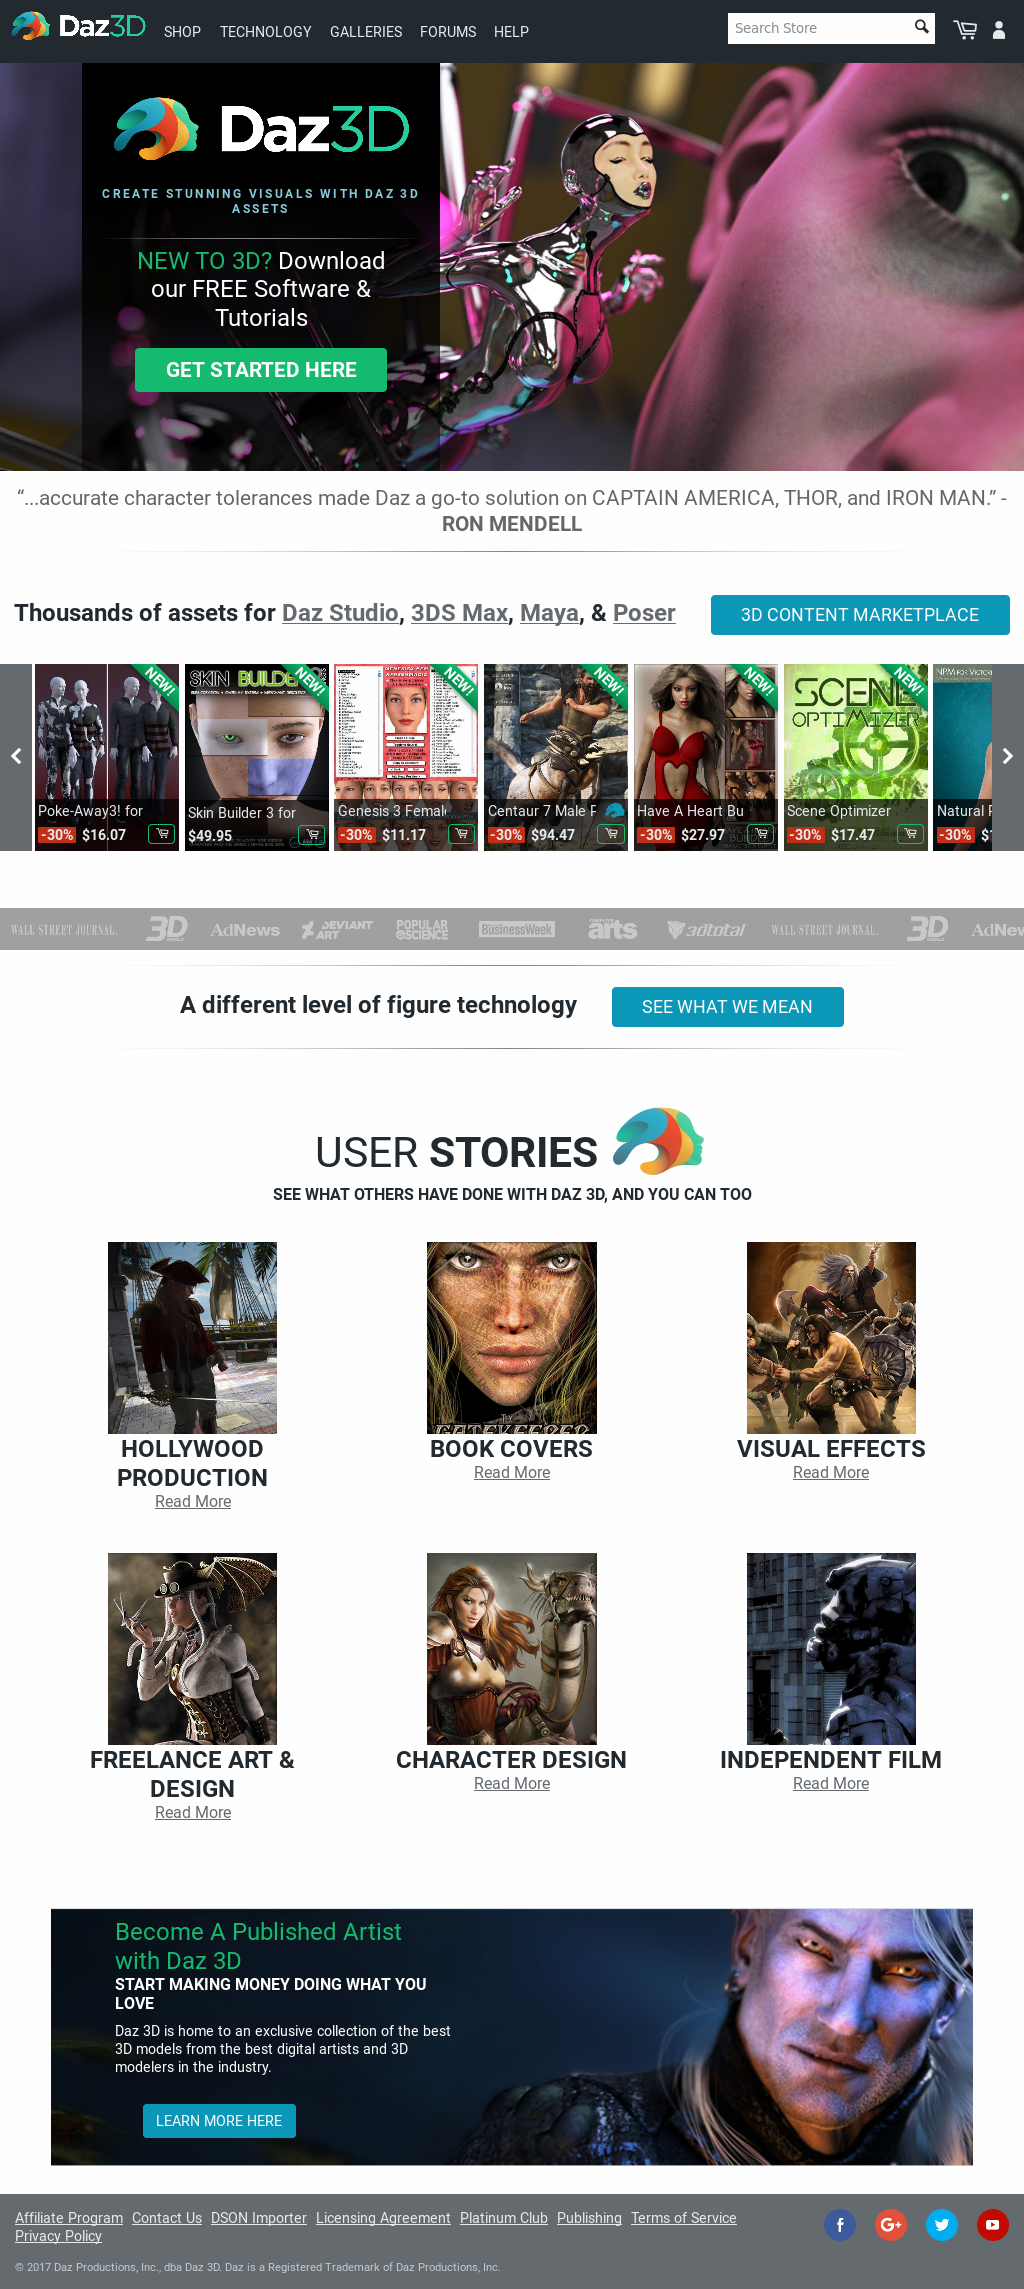 DAZ3D Competitors, Revenue and Employees - Owler Company Profile